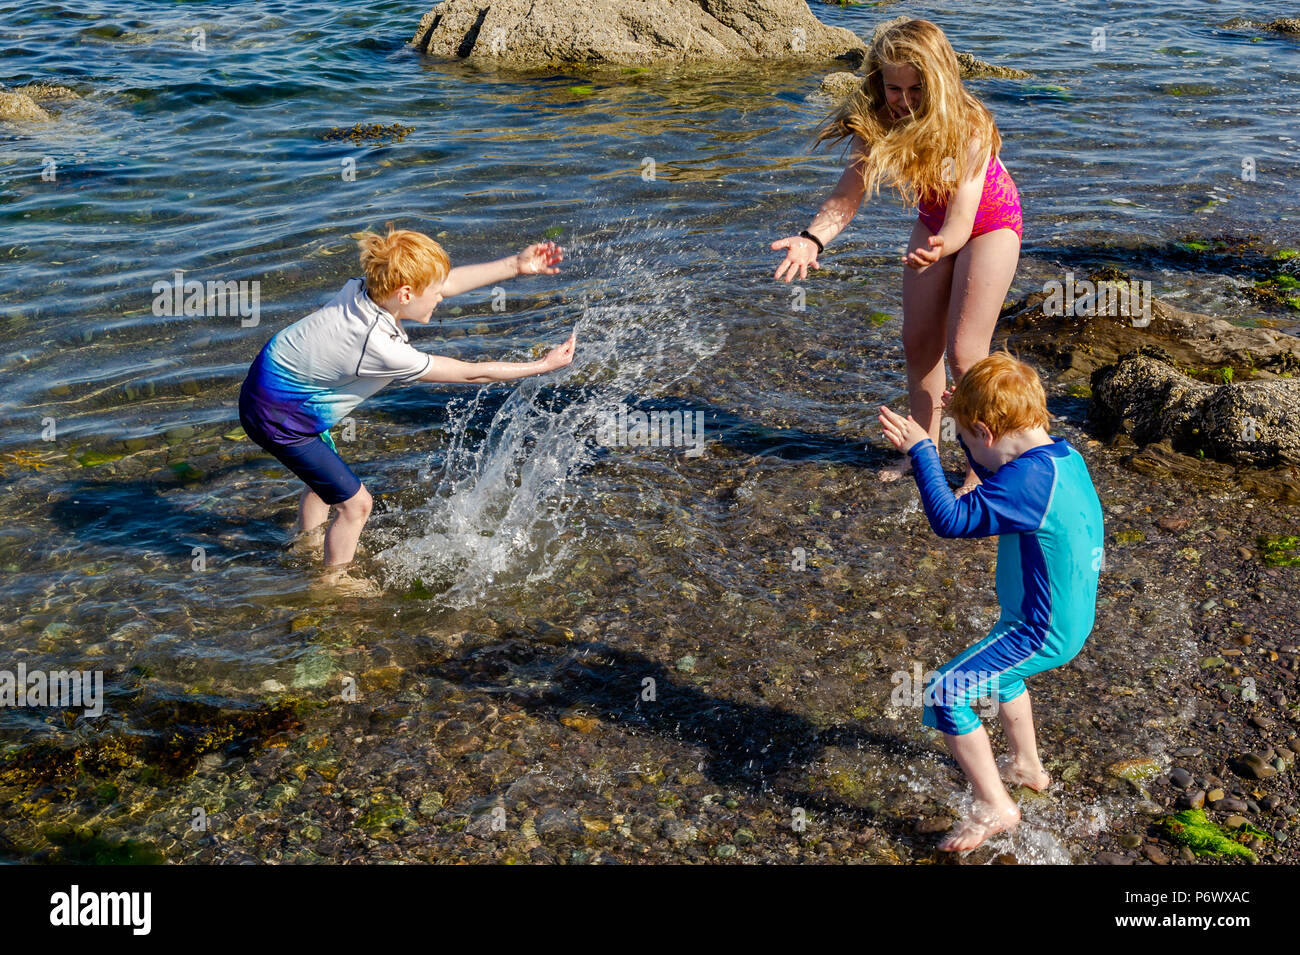 Schull, West Cork, Ireland. 3rd July, 2018. Daniel, Eve and Sam Enright from Dublin cool off in the sea on another blisteringly hot day. The heatwave shows no sign of ending with temperatures forecast to be in the high 20°'s Celsius for at least a week. Credit: Andy Gibson/Alamy Live News. - Stock Image